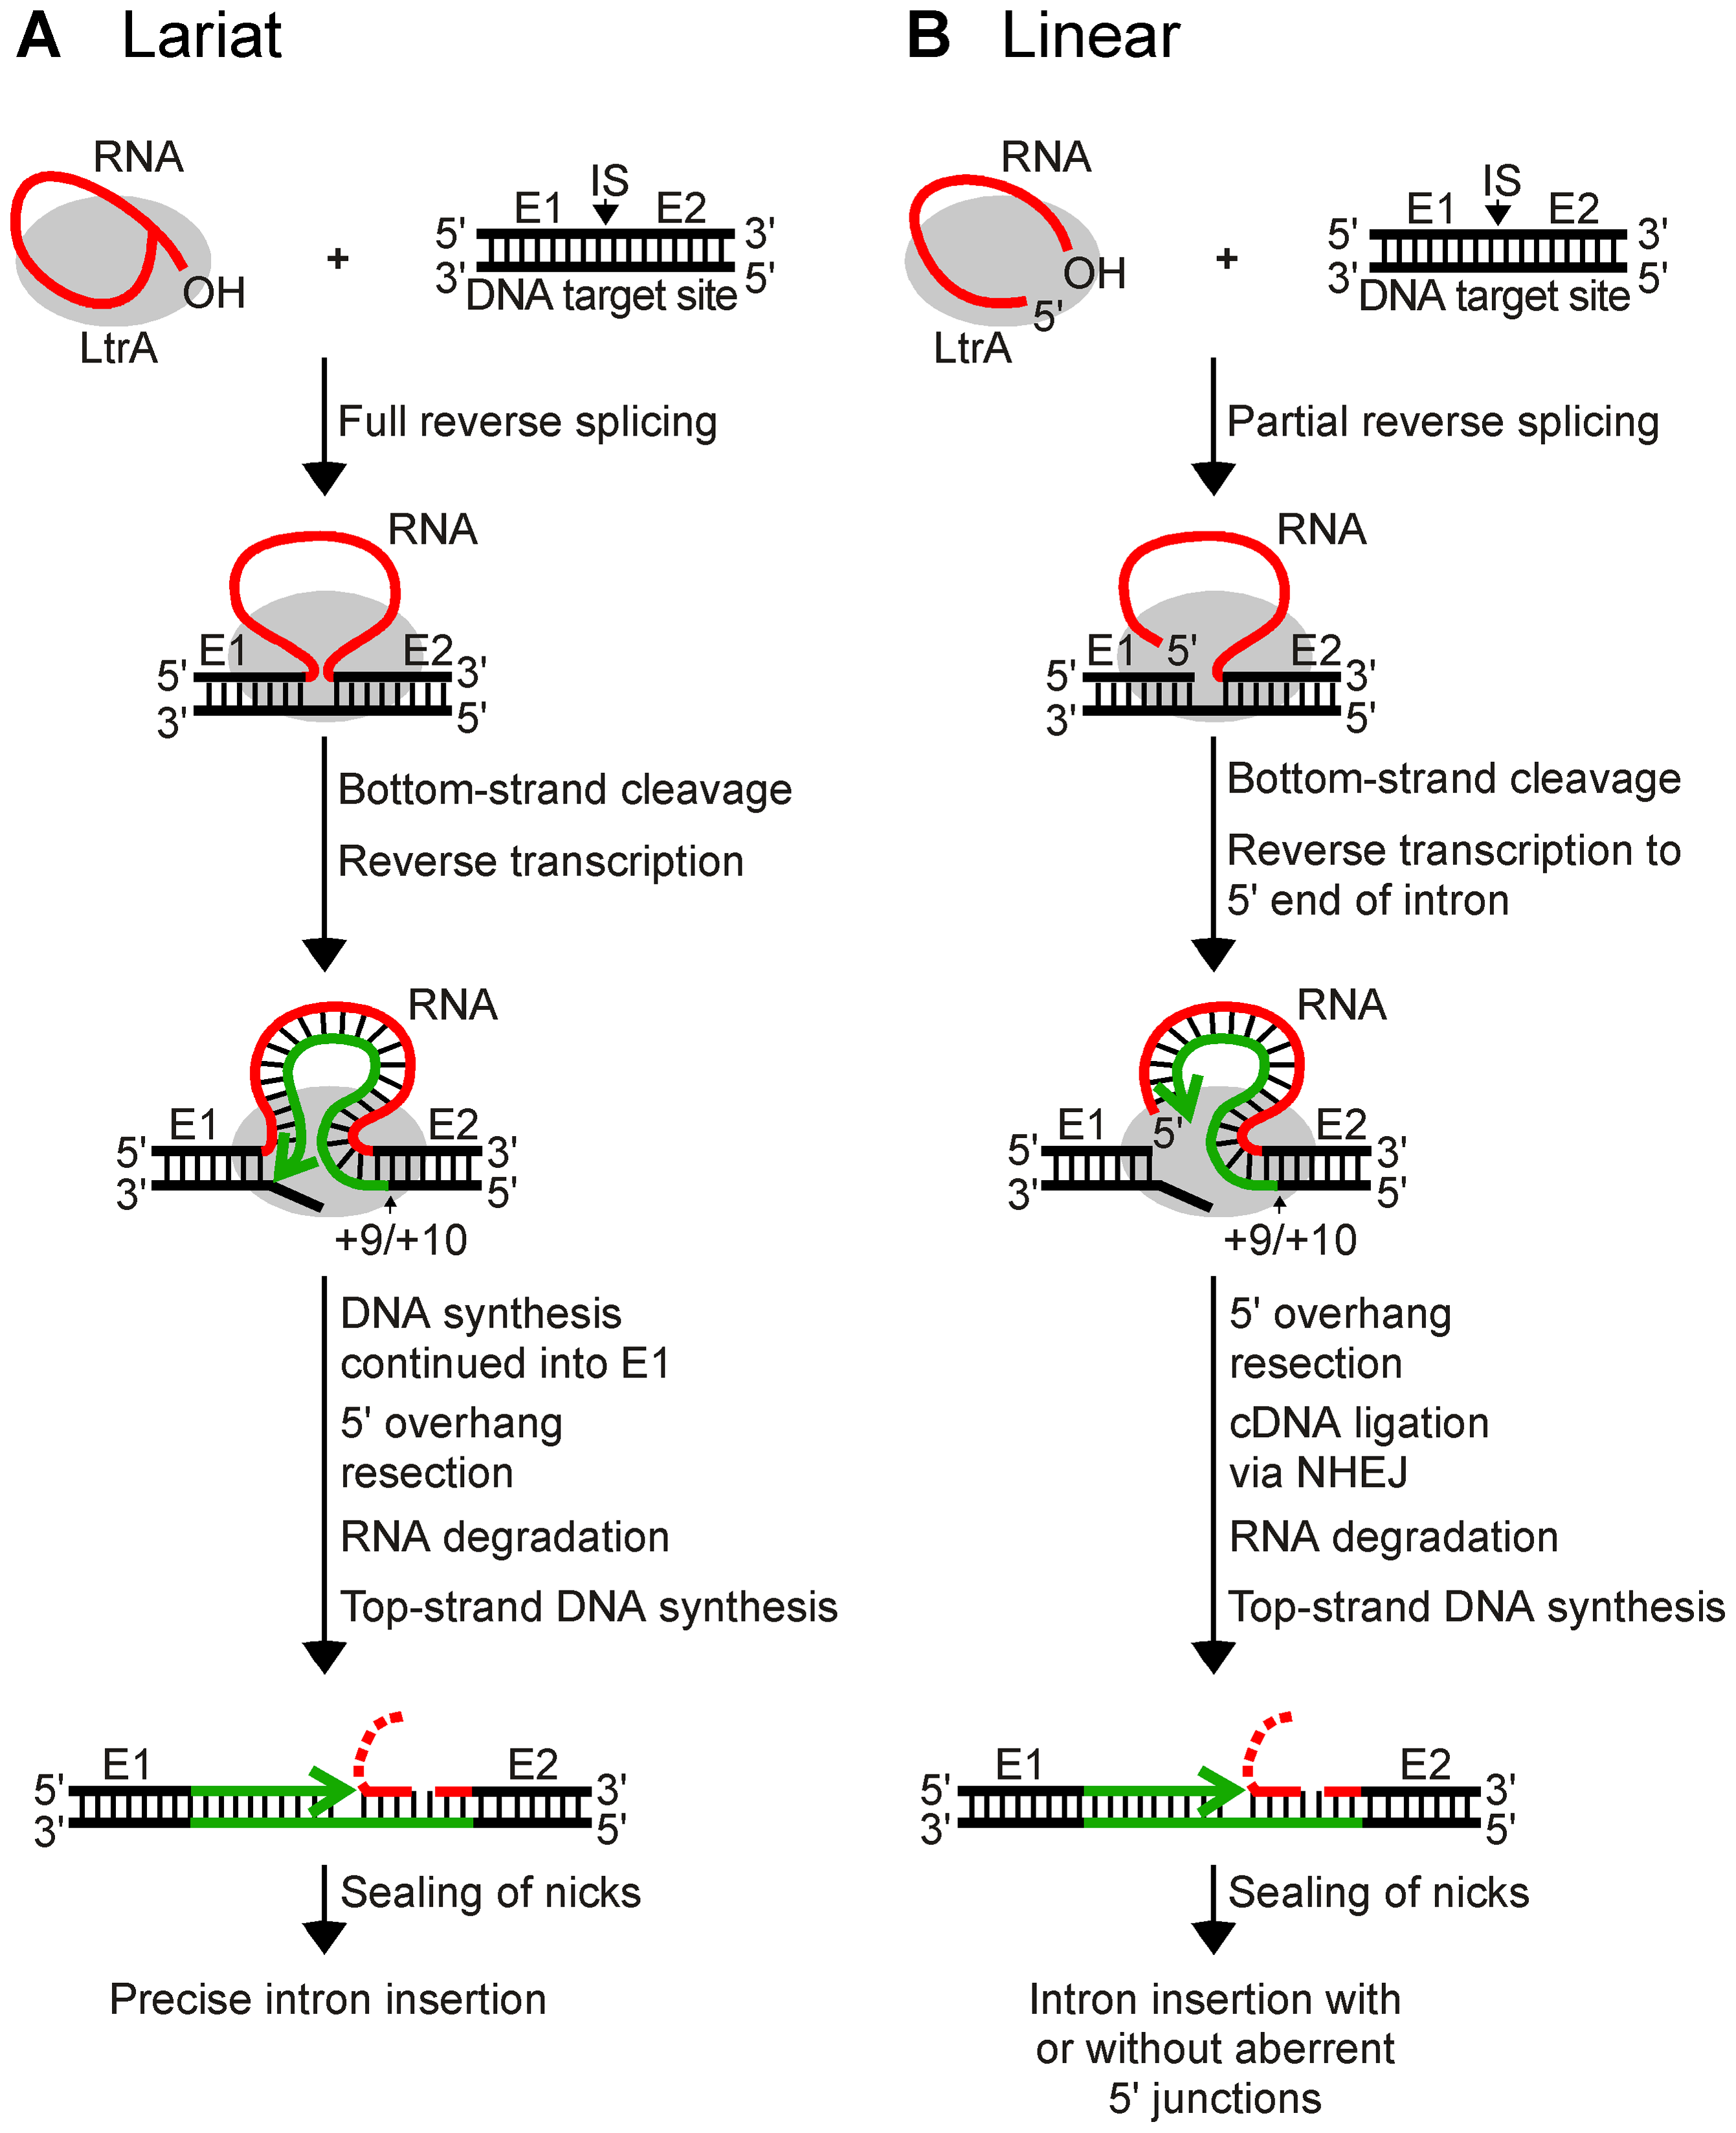 Models for retrohoming of Ll.LtrB group II intron lariat and linear RNAs.